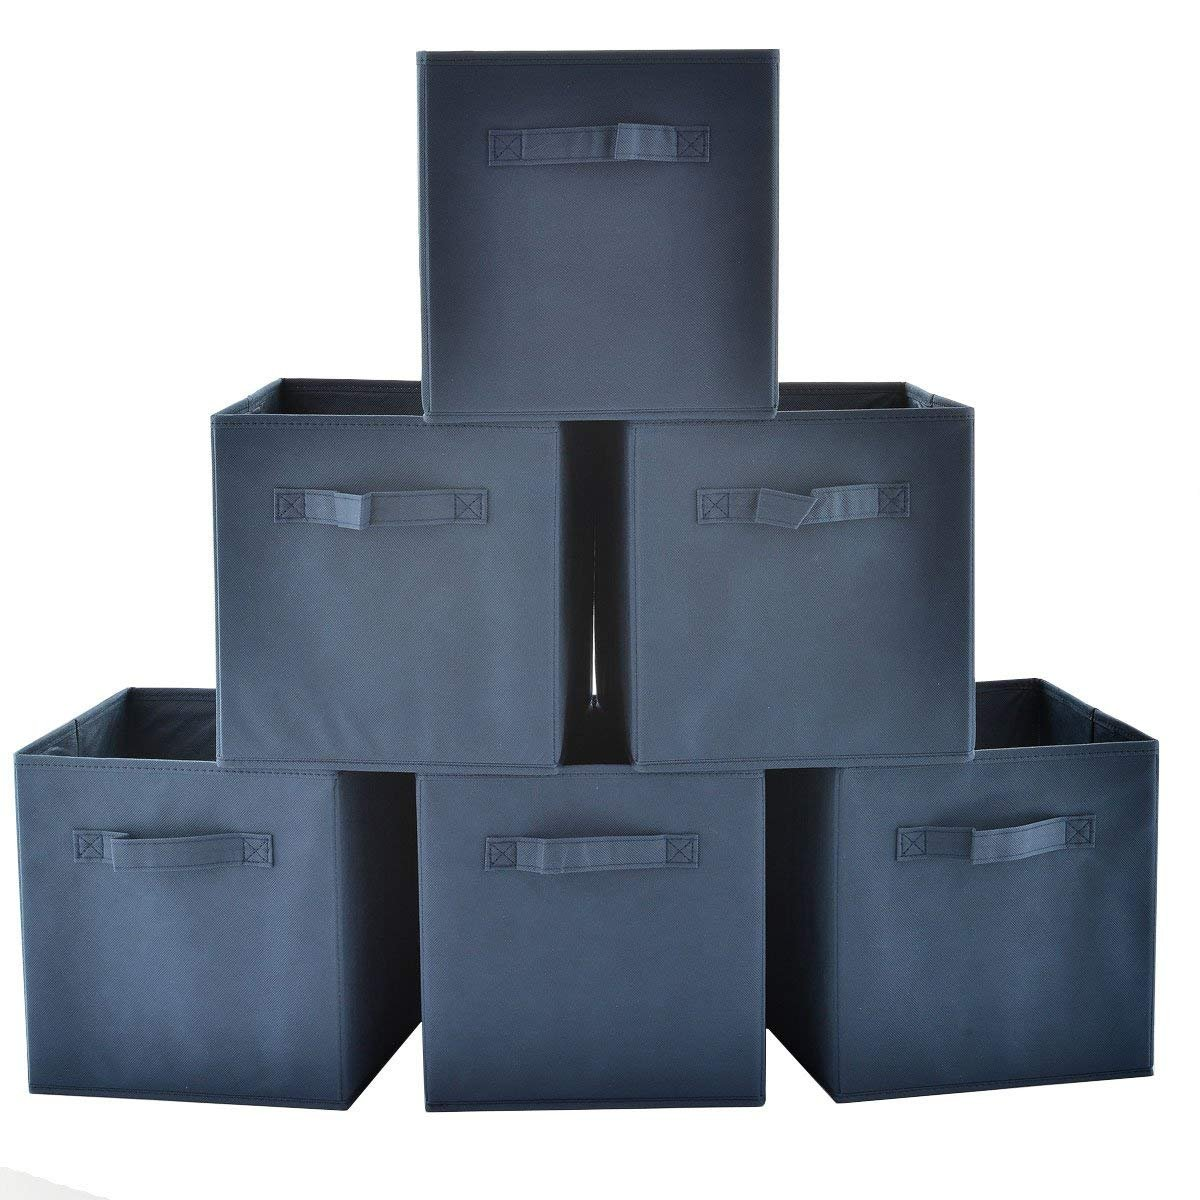 SHACO Durable Cloth Storage Cubes, Blue Foldable Fabric Drawers For Six Cubes